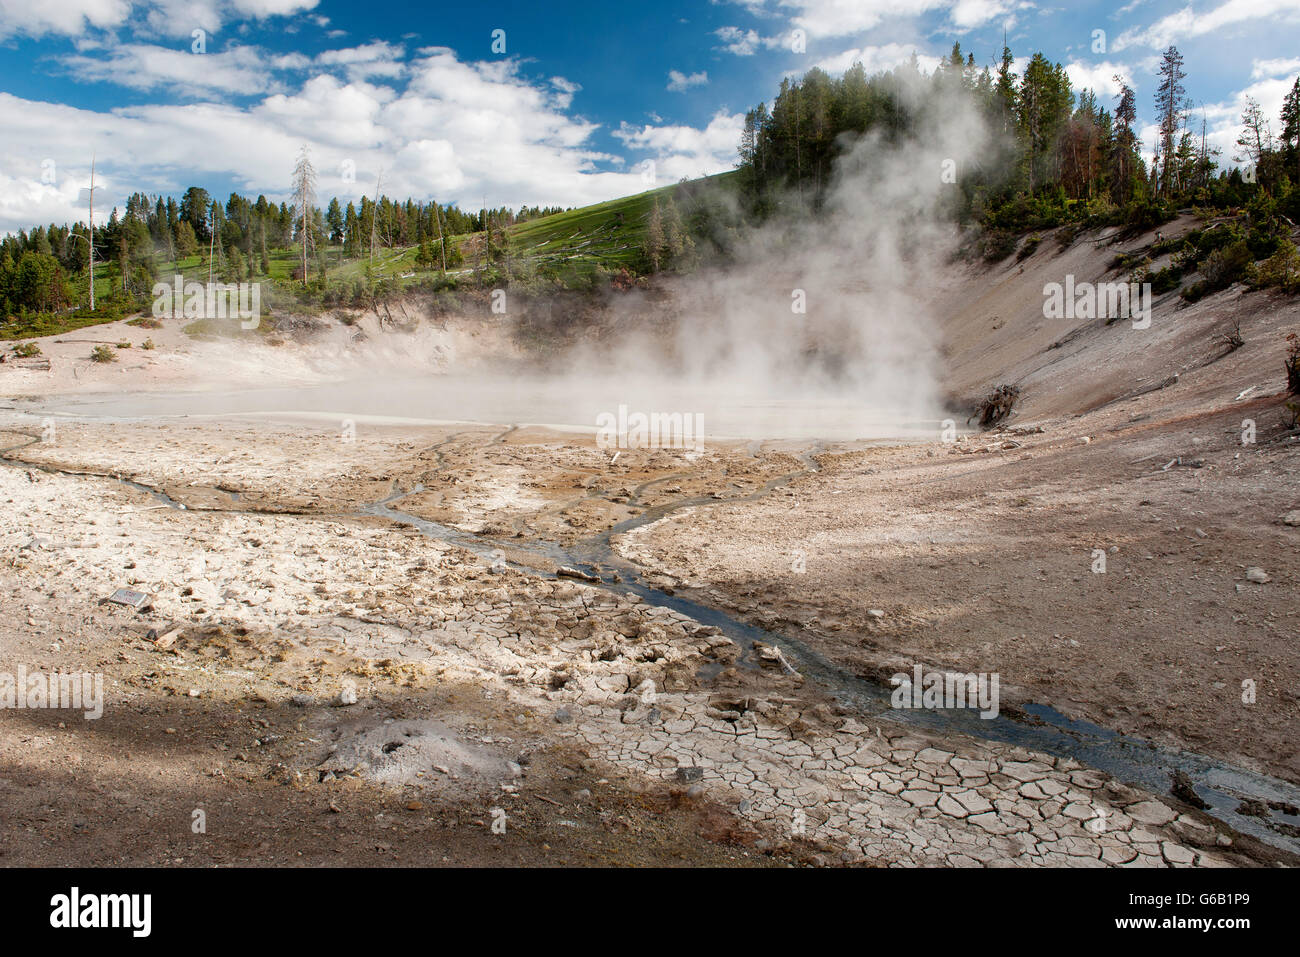 Hot Spring dans le Parc National de Yellowstone, Wyoming, USA Photo Stock